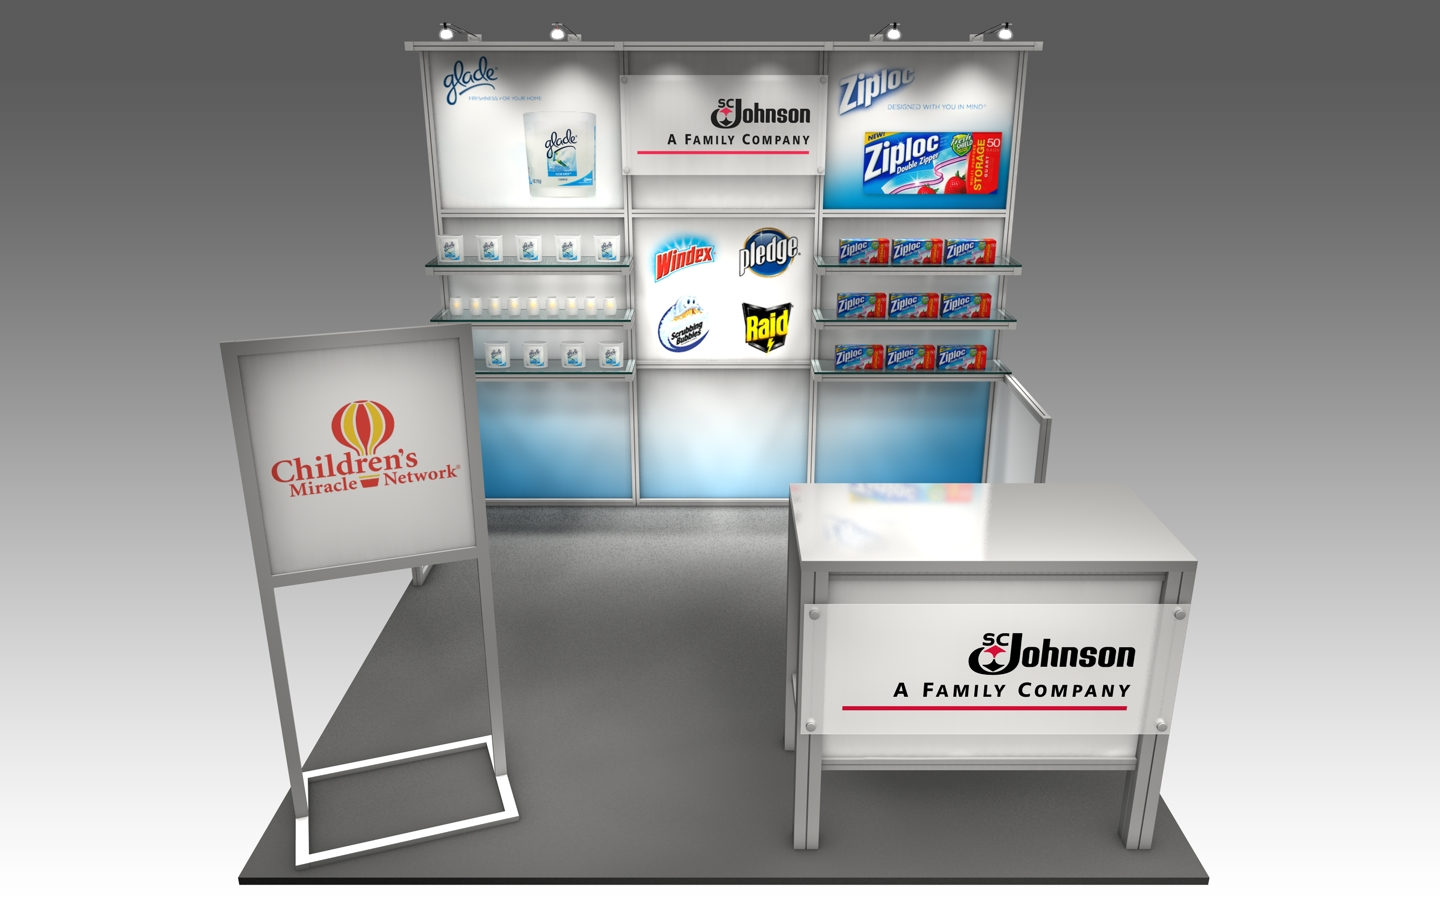 Custom designed rental booth with shelving and graphics to highlight product